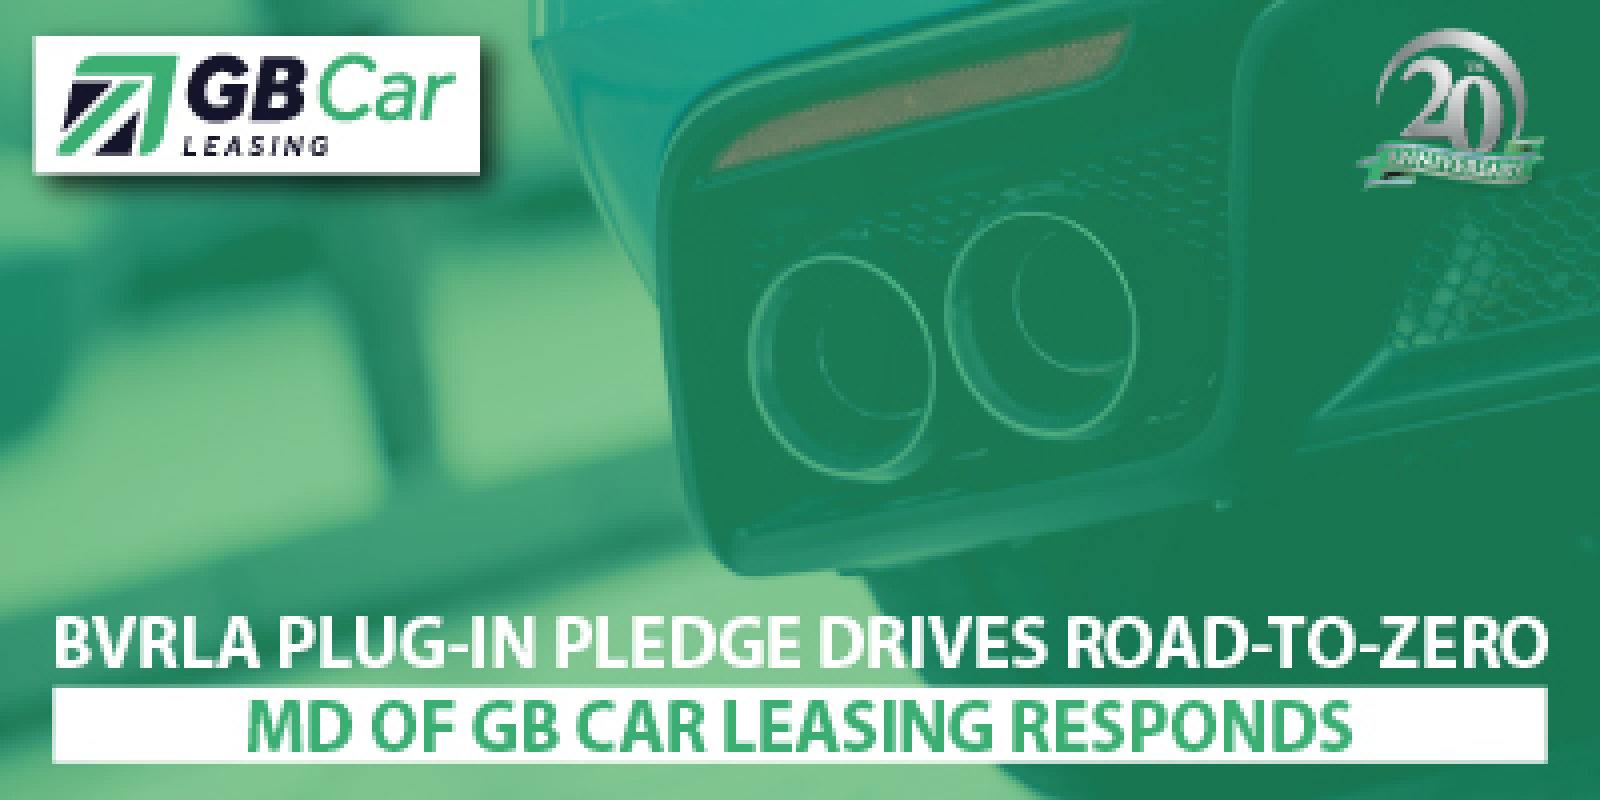 BVRLA Plug-in-Pledge drives Road-to-Zero